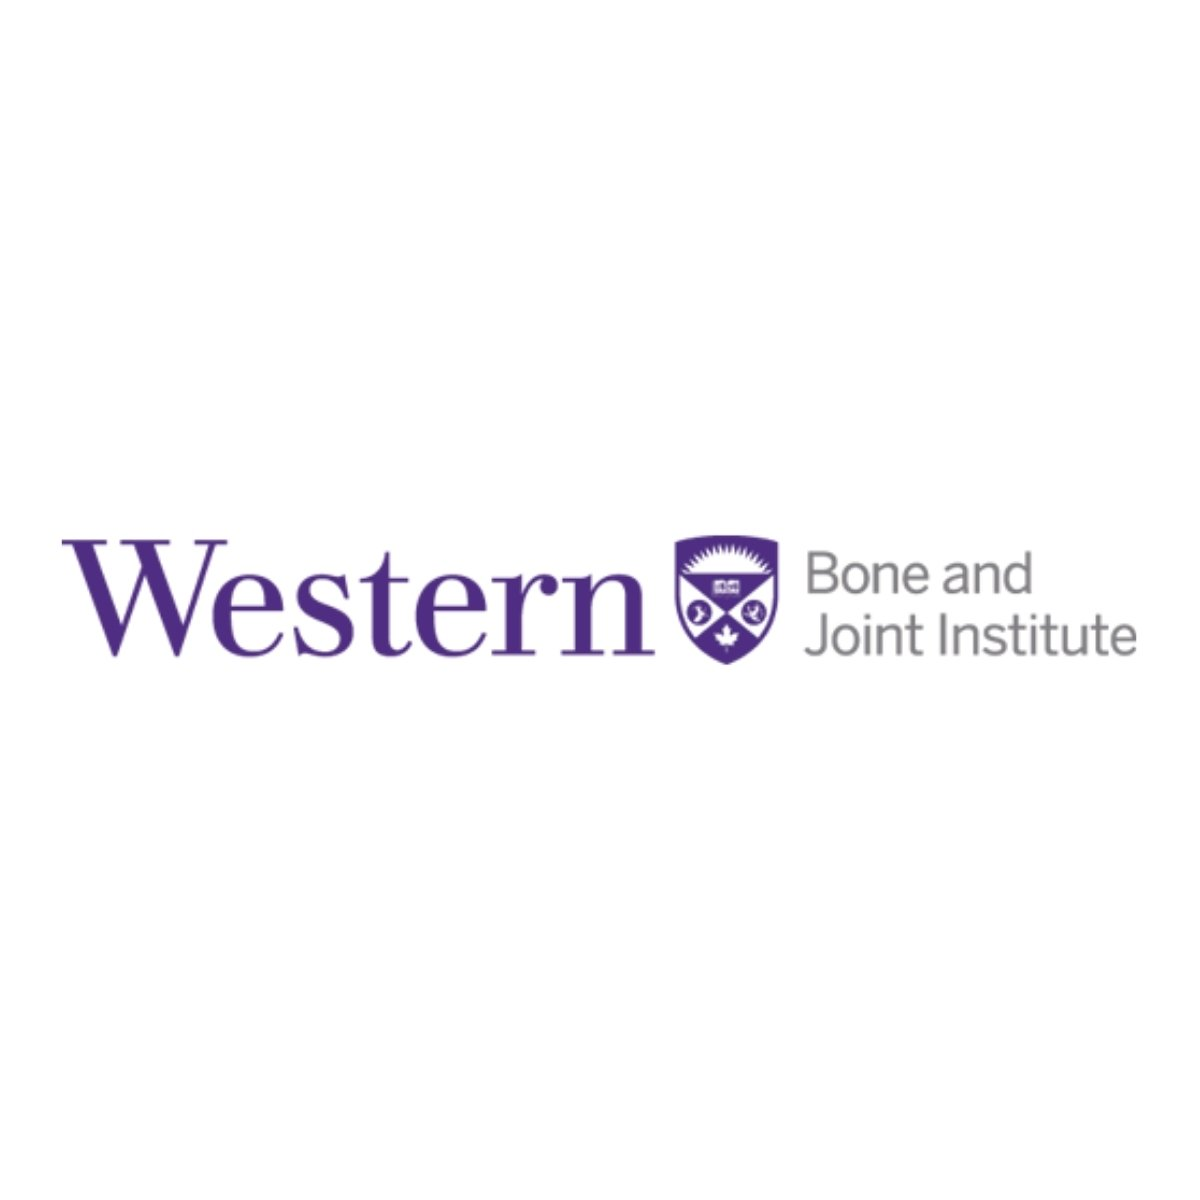 Western Bone and Joint Institute logo